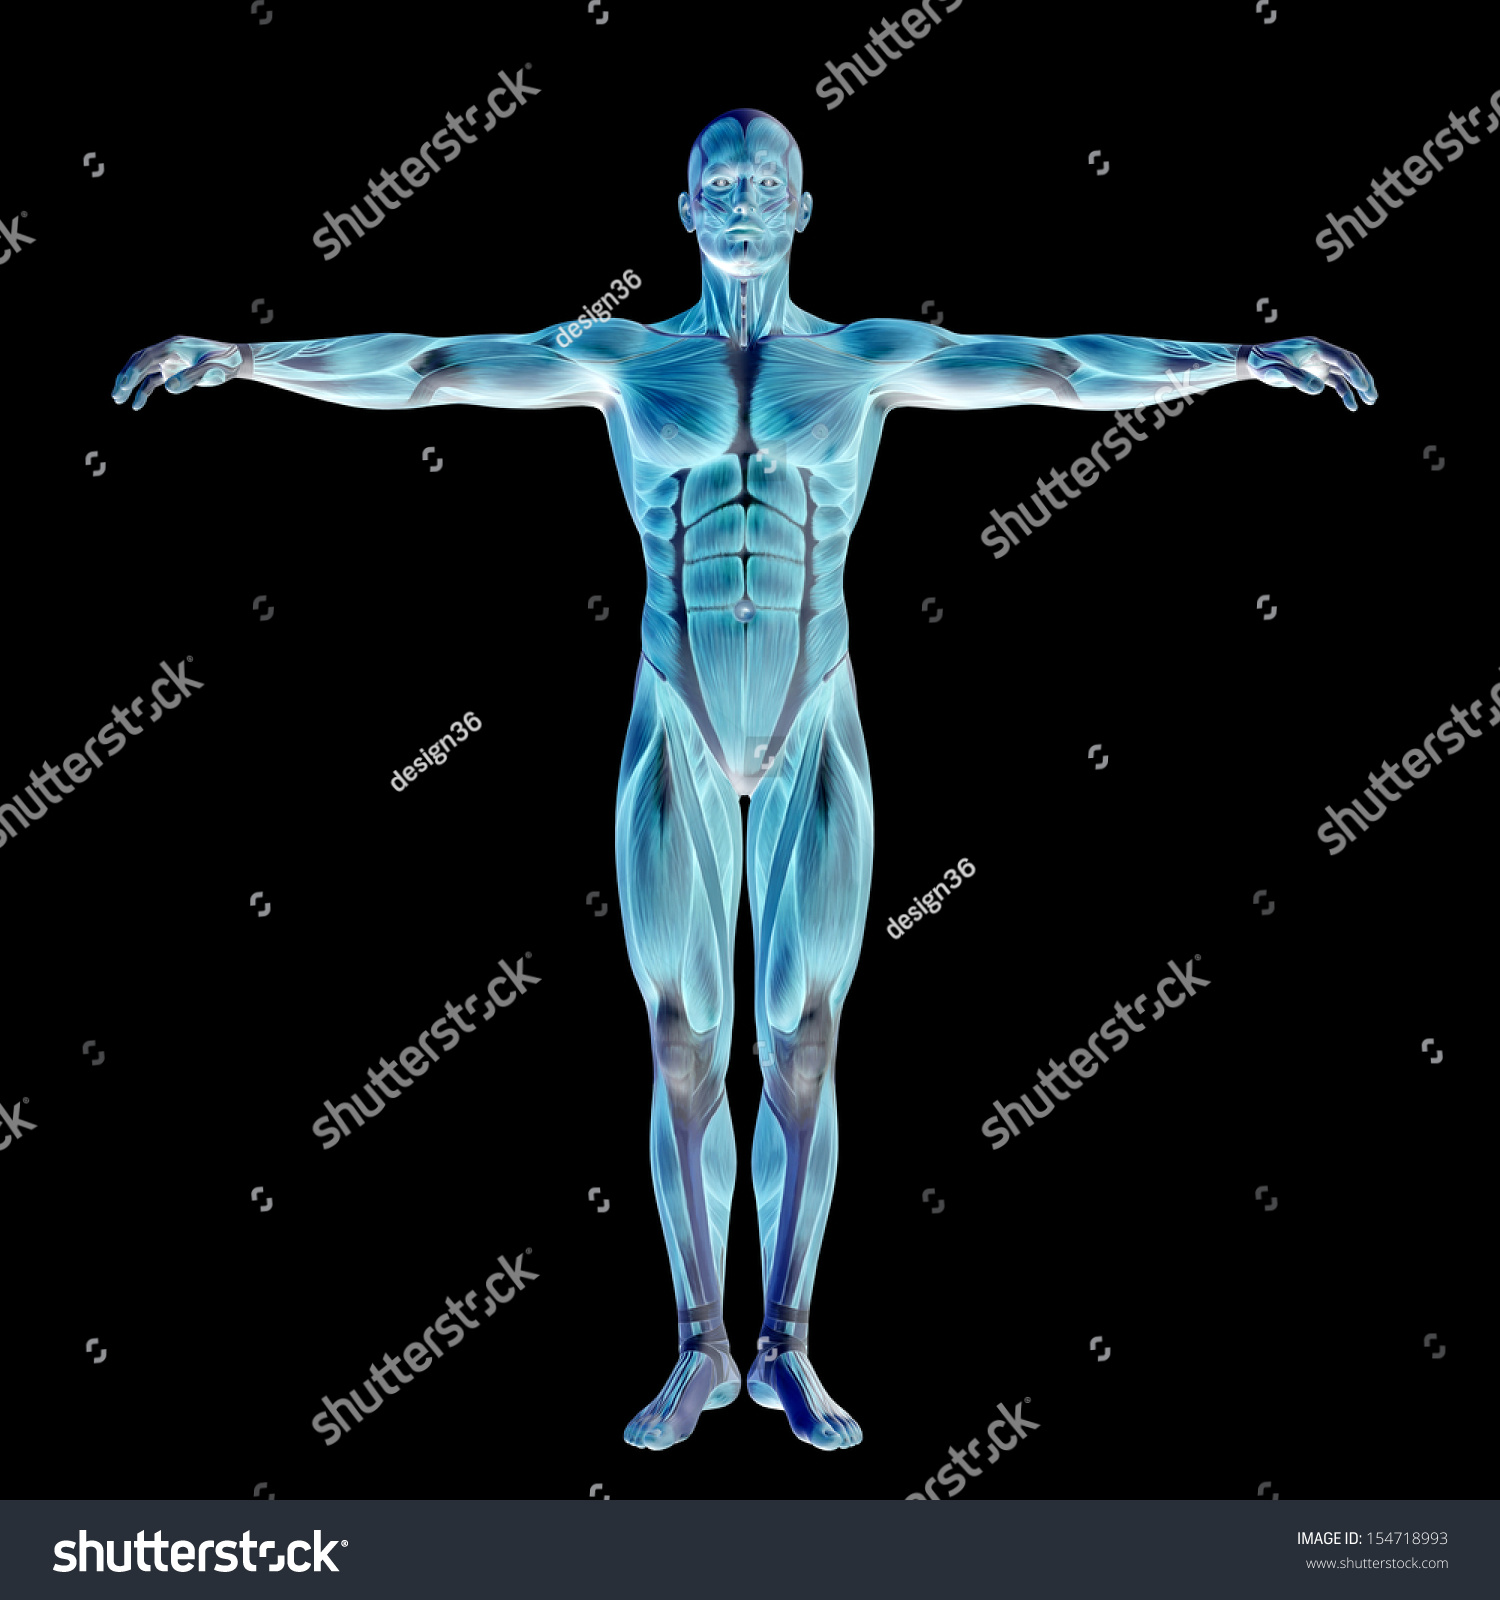 Fitness Biology: High Resolution Concept Or Conceptual Human Or Man 3d